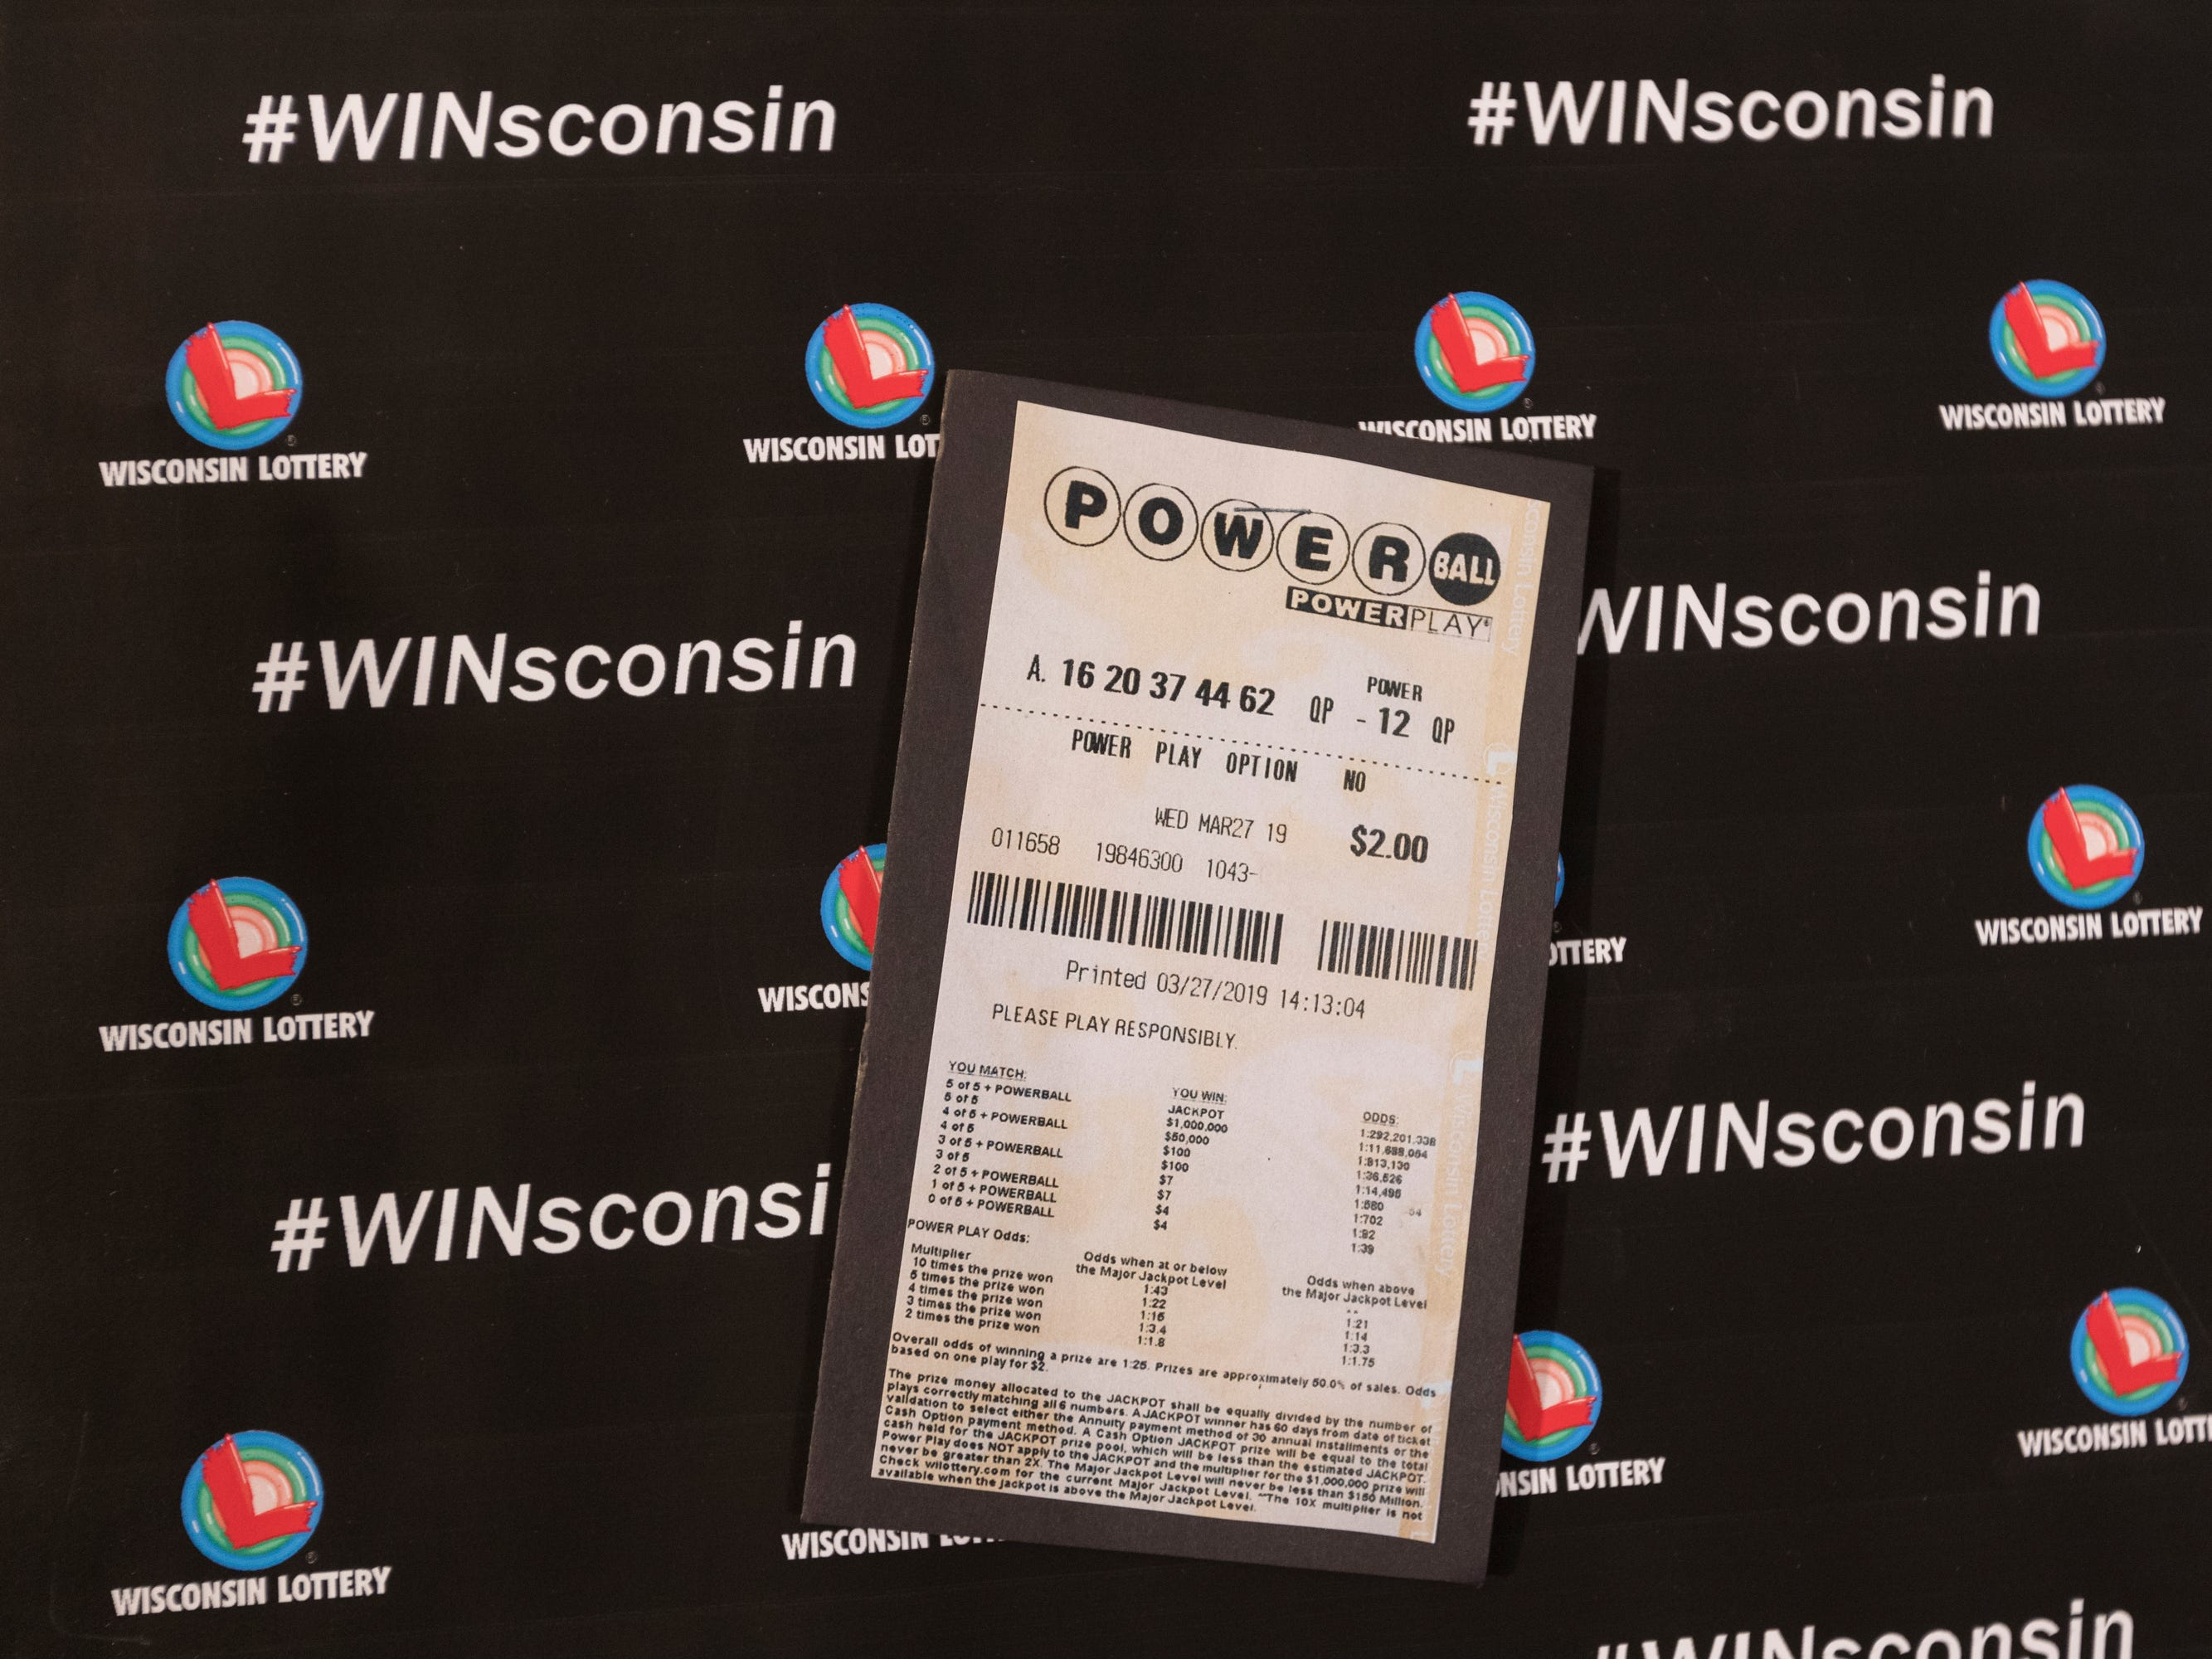 A copy of the winning Powerball ticket redeemed by Manuel Franco.